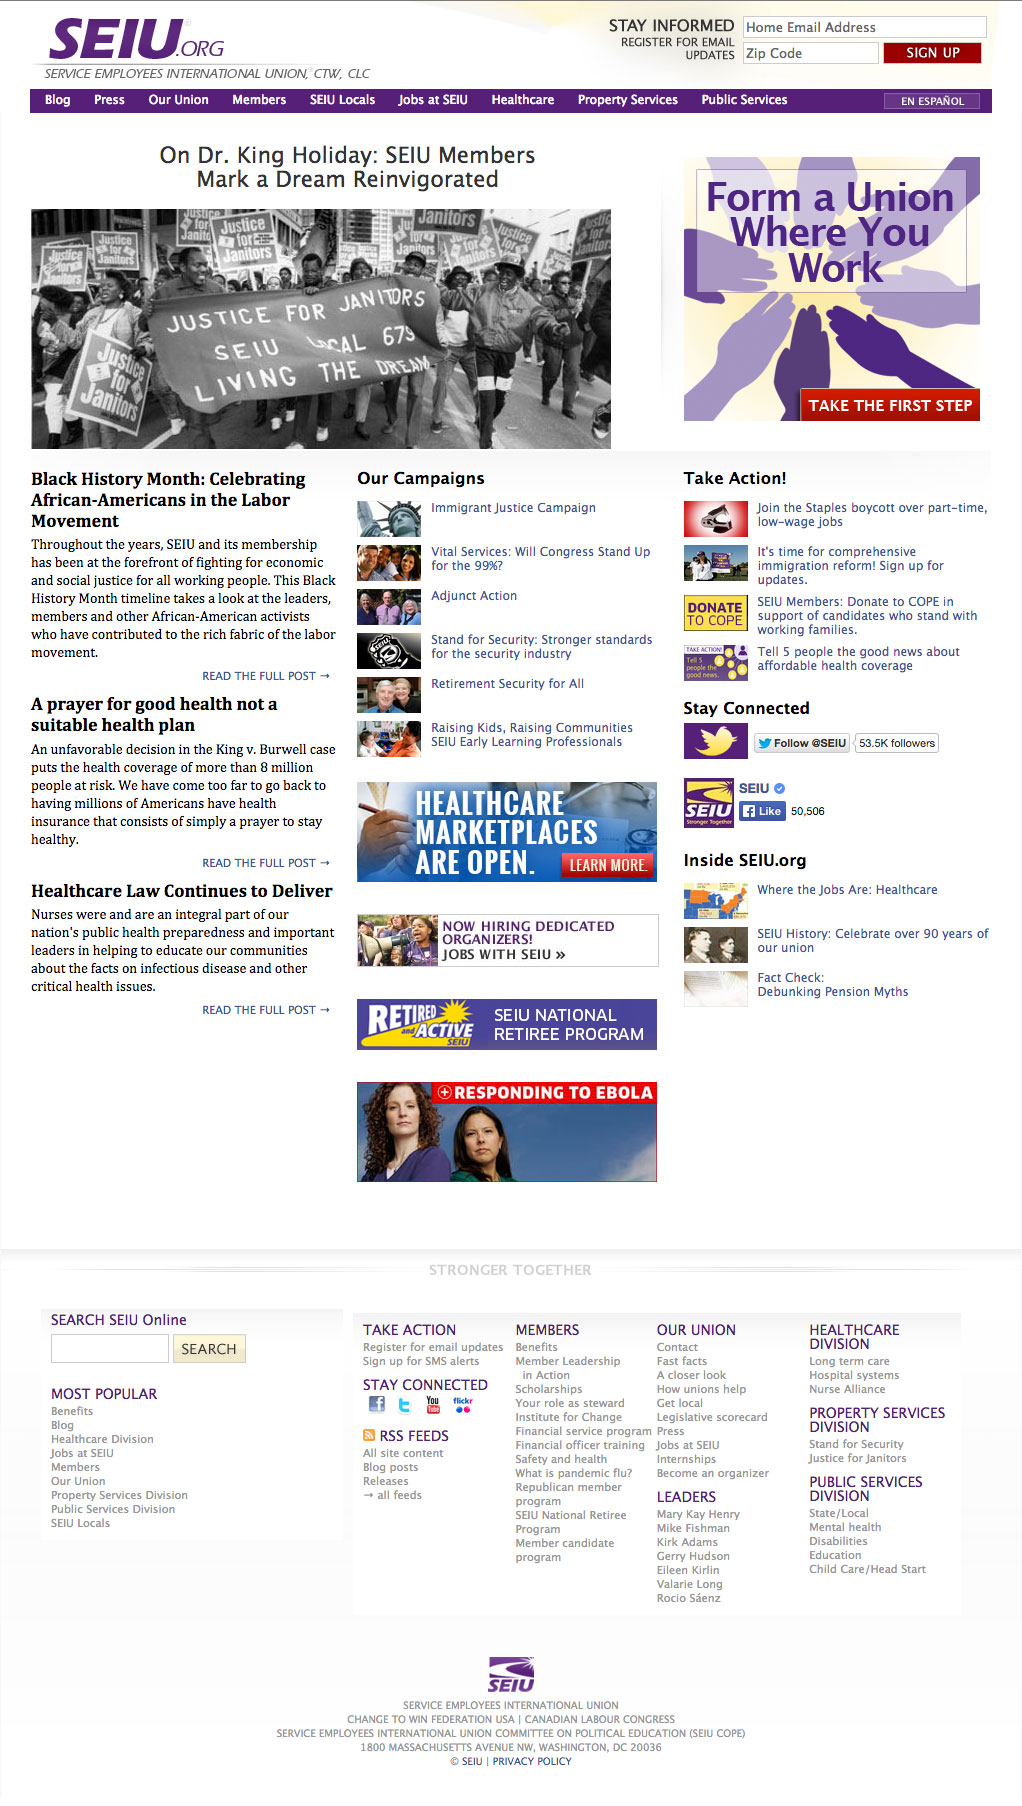 Redesigned SEIU.org with emphasis on action steps and concise access to the top priority activitiesof the busy 2 million membereconomic justice nonprofit.